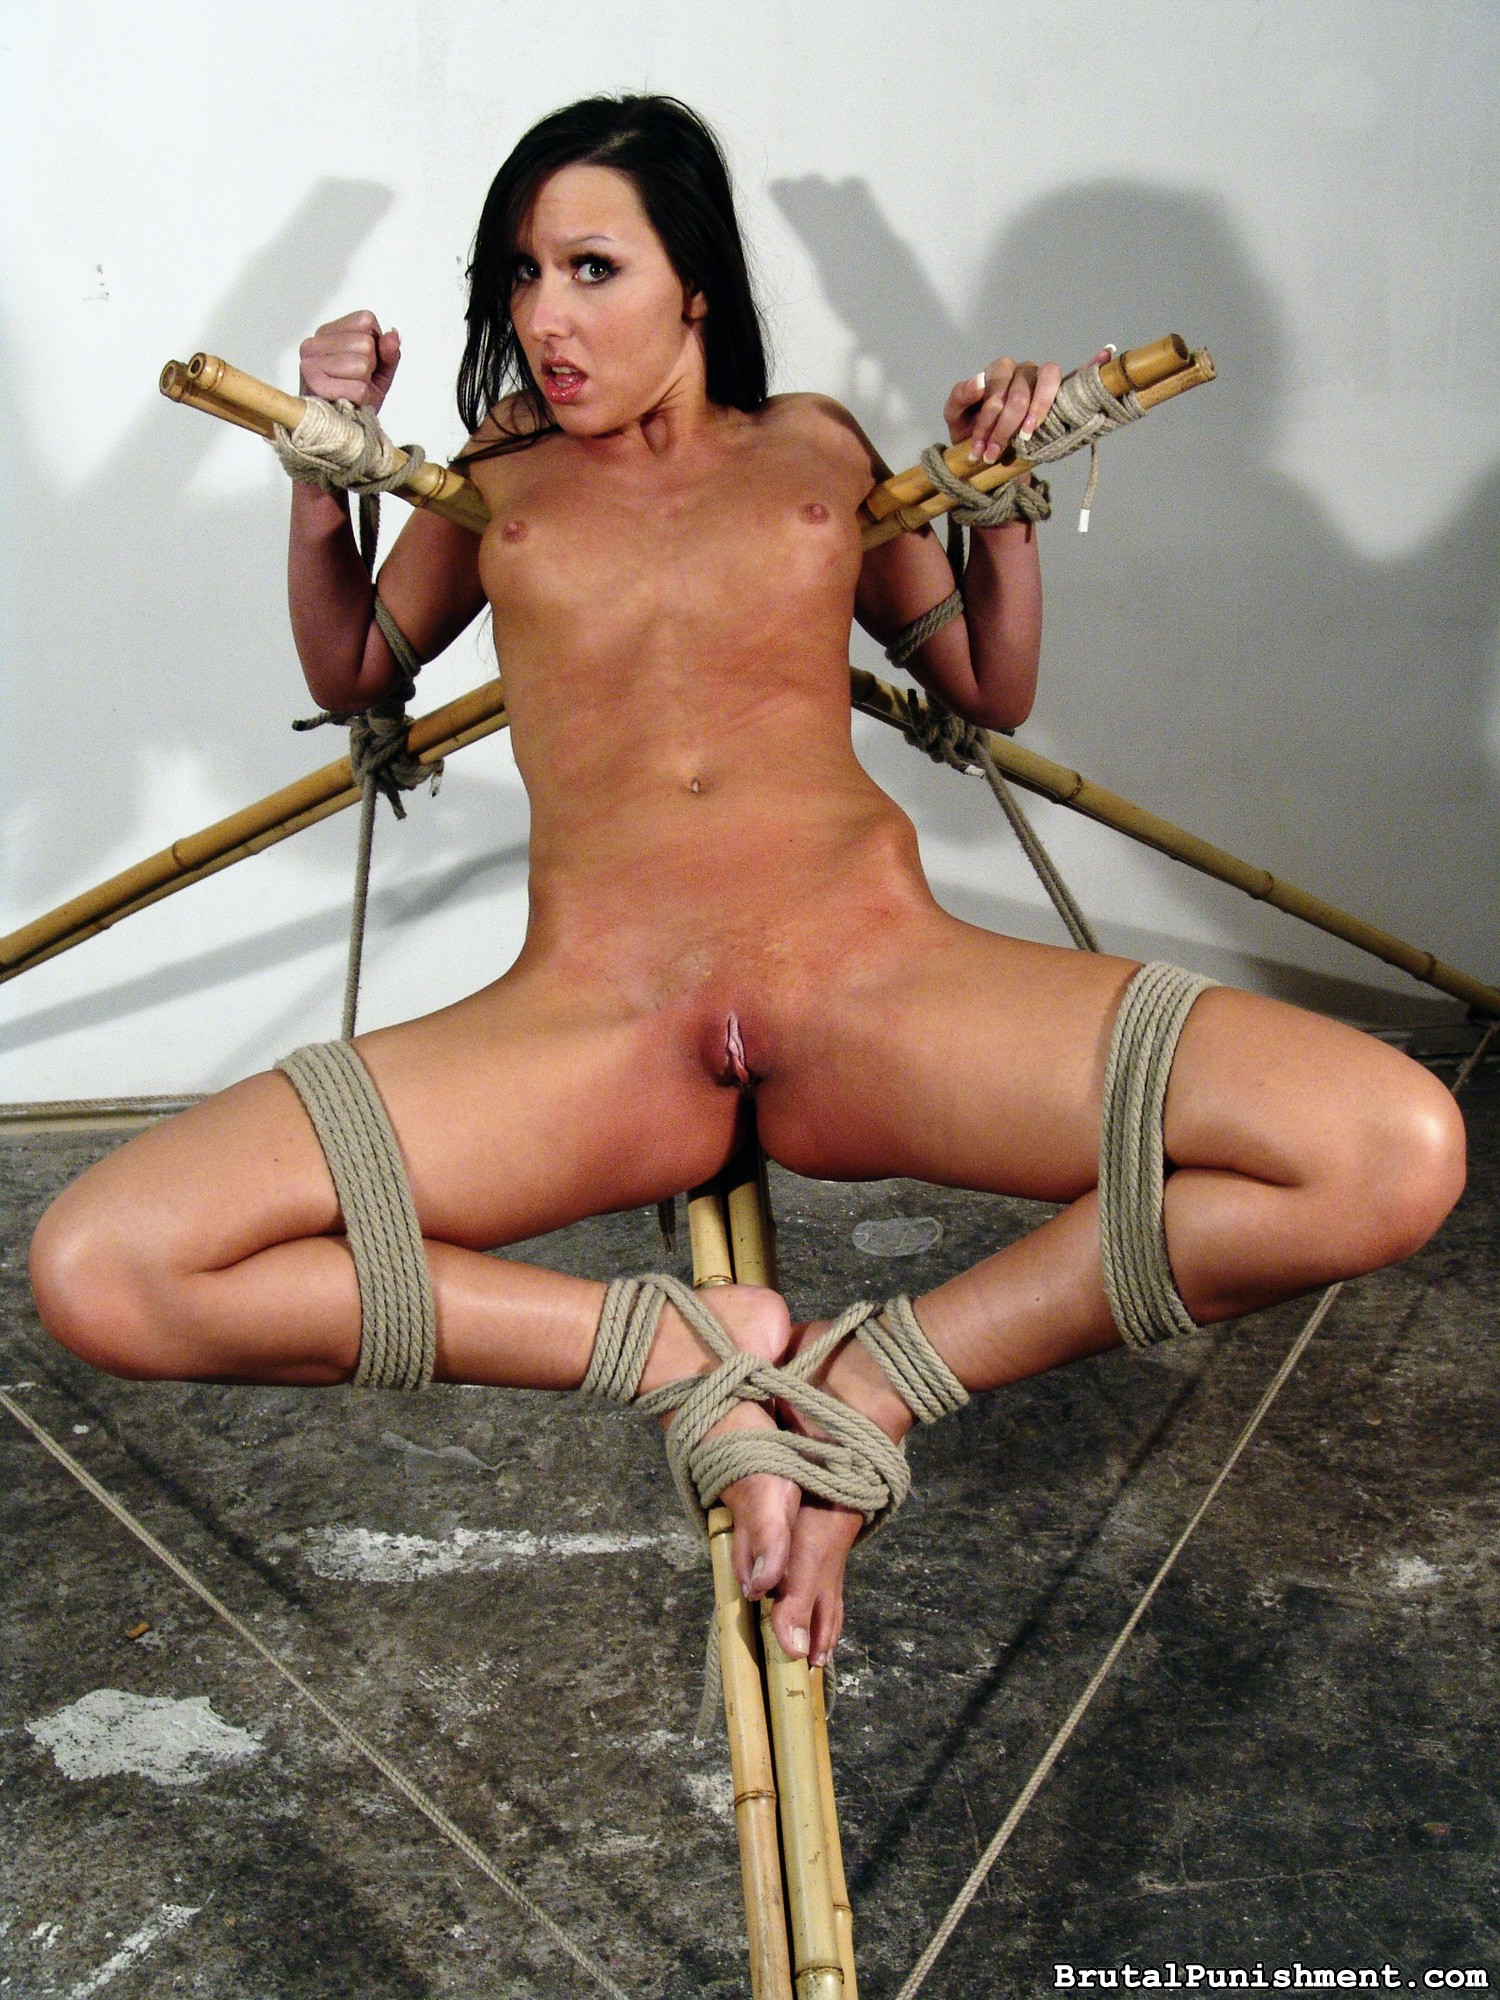 Ultra-kinky Anguish Fuckslut Nicole Suffers Every Other Restrain Bondage Consultation